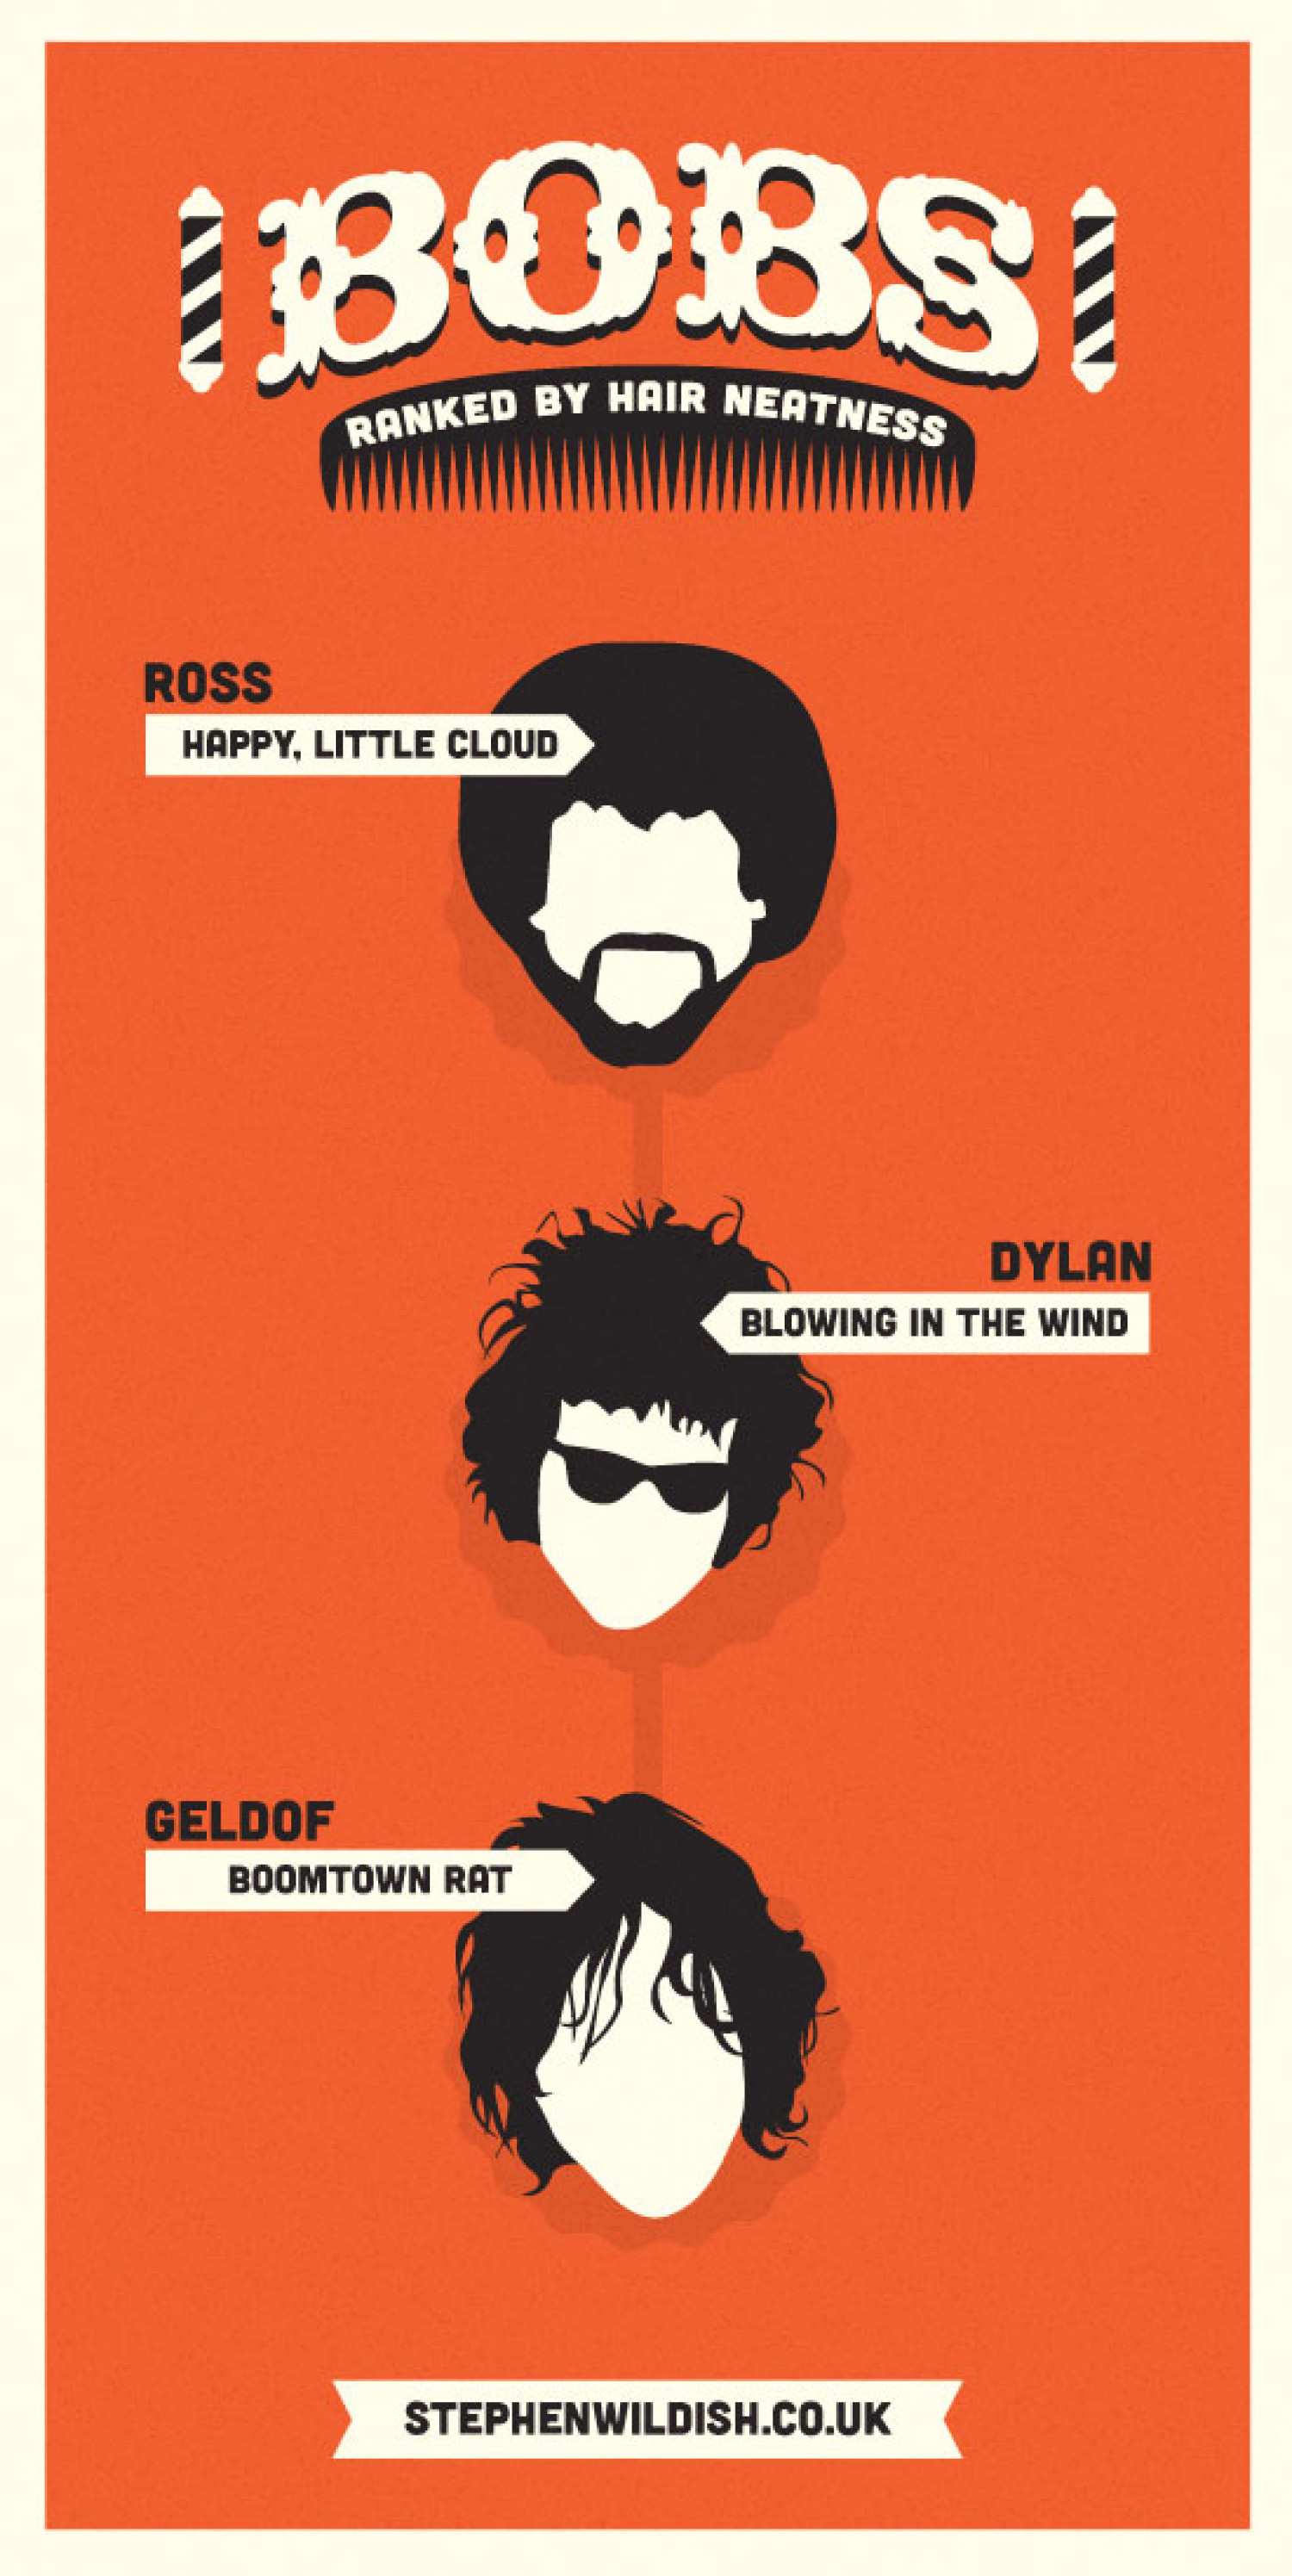 Bobs, ranked by hair neatness Infographic